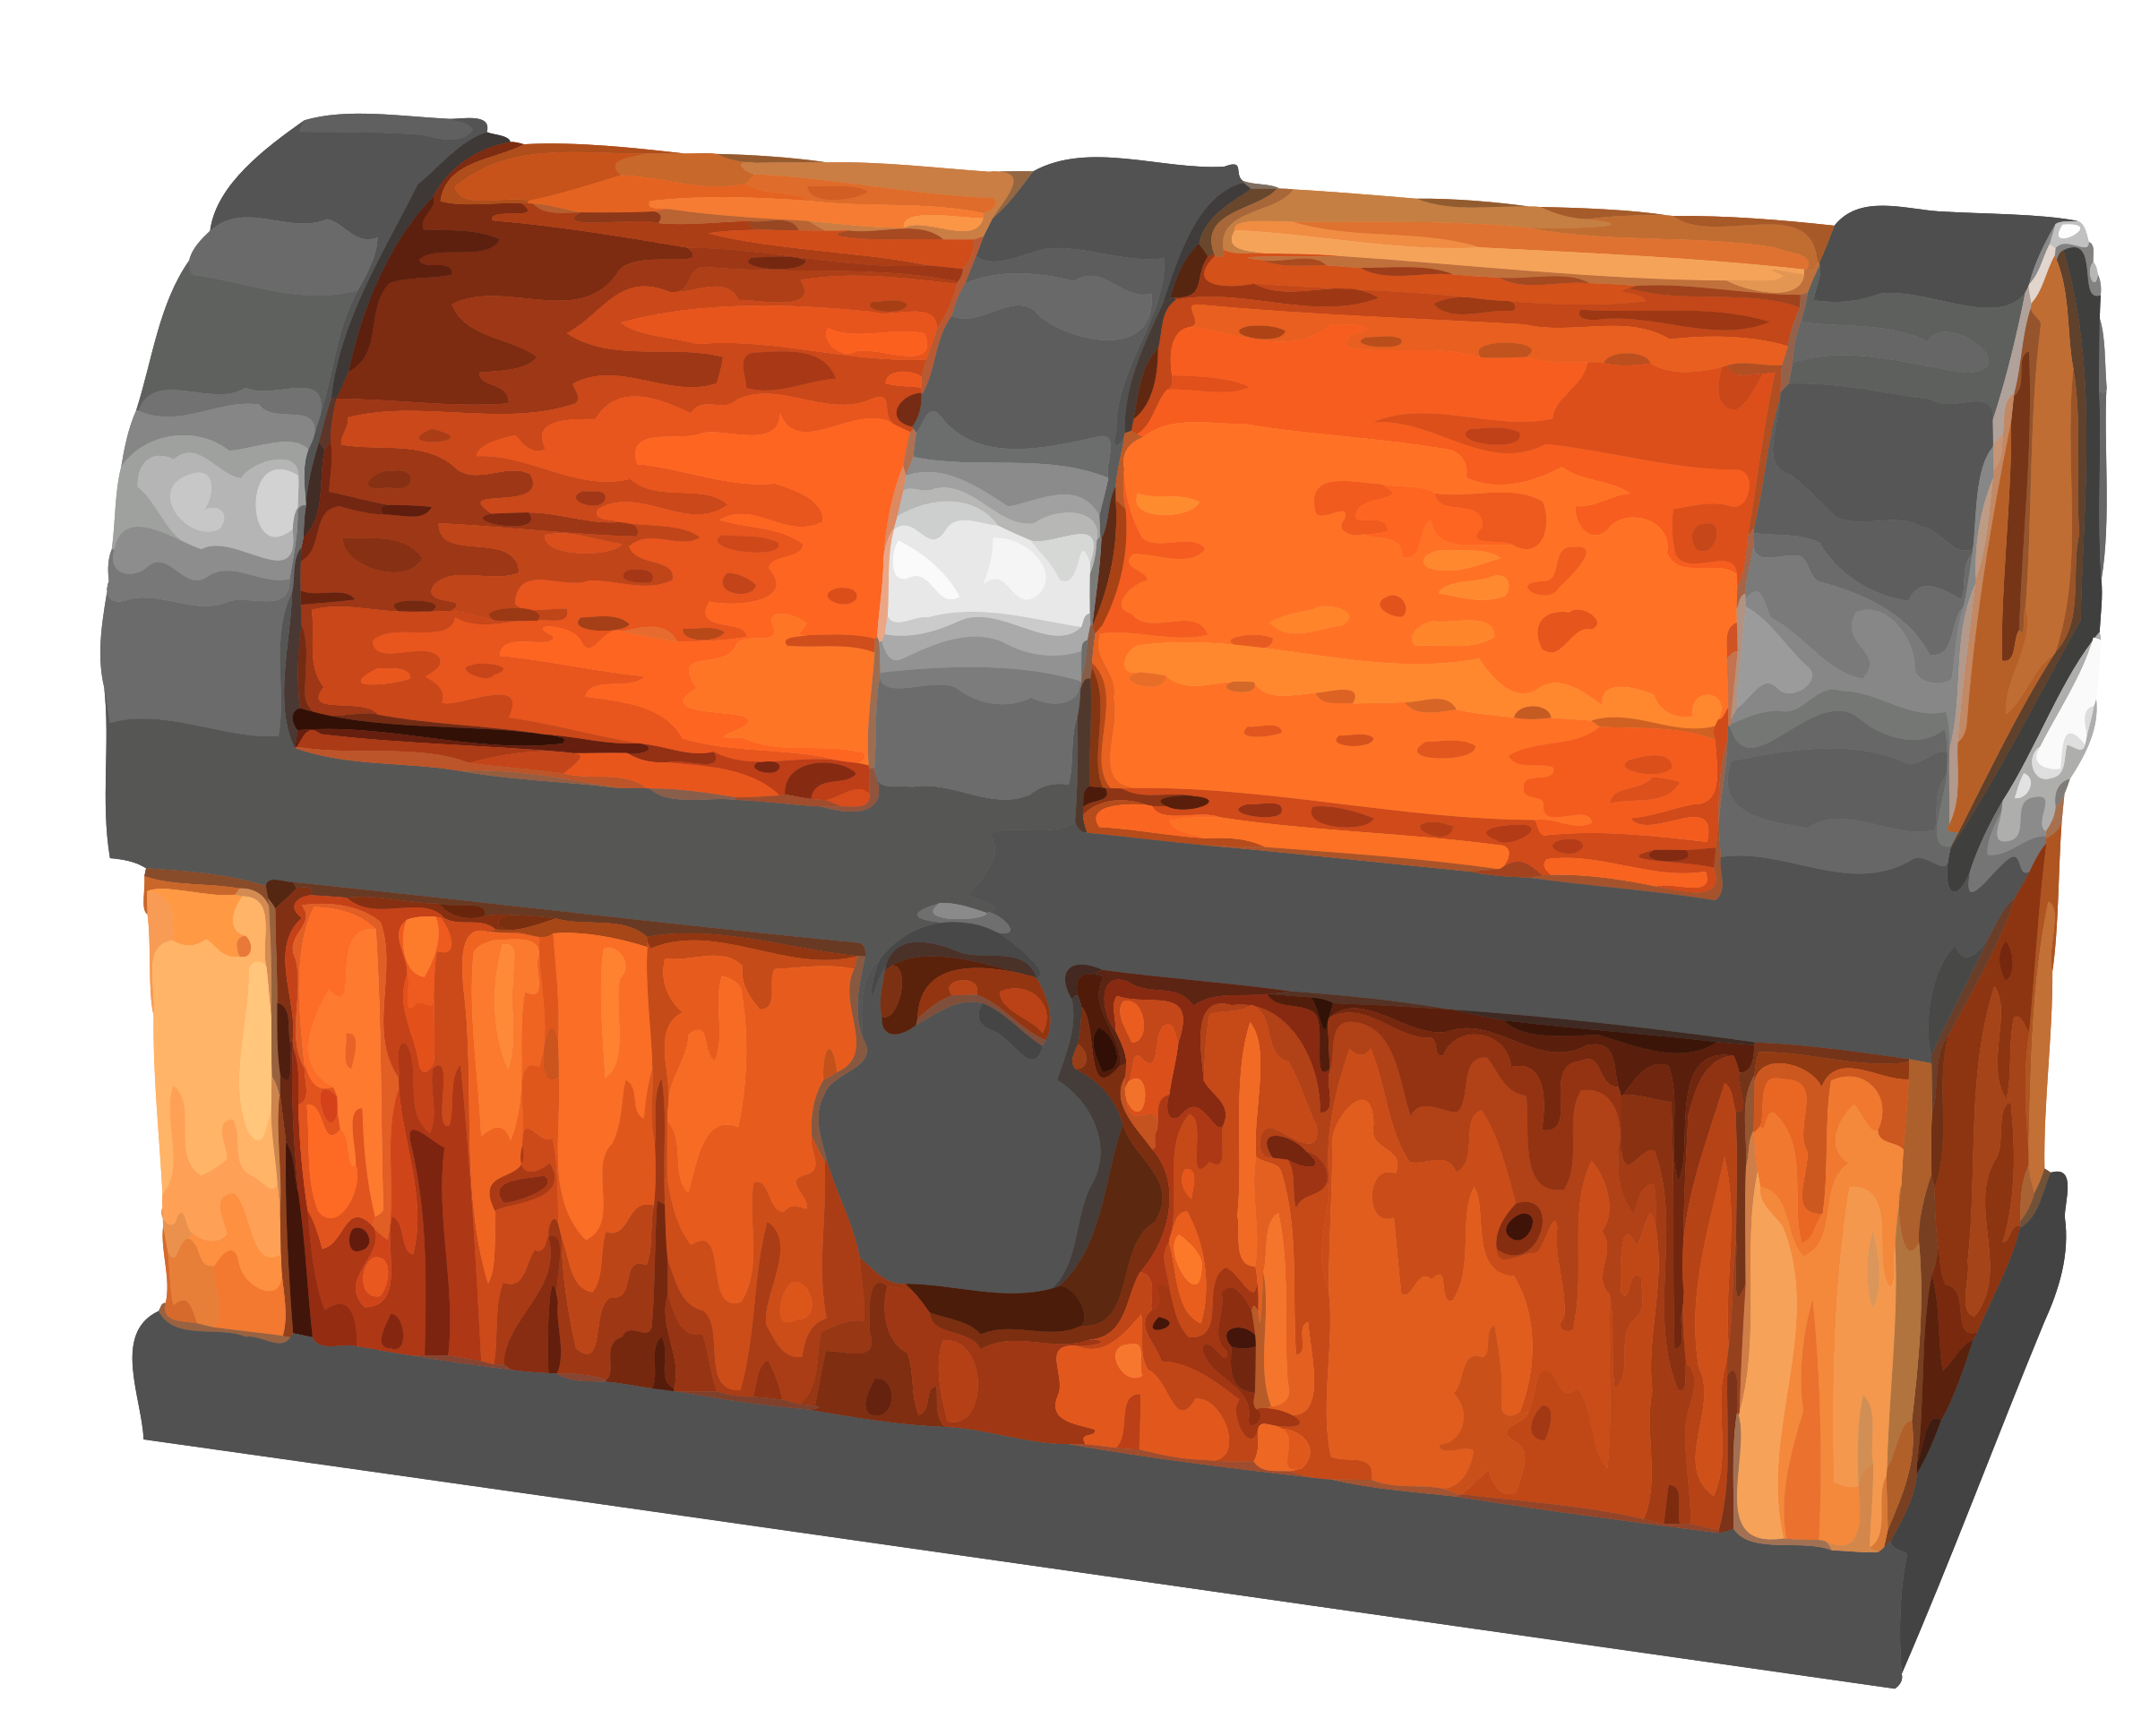 Icons free and downloads. Png chest picture freeuse download